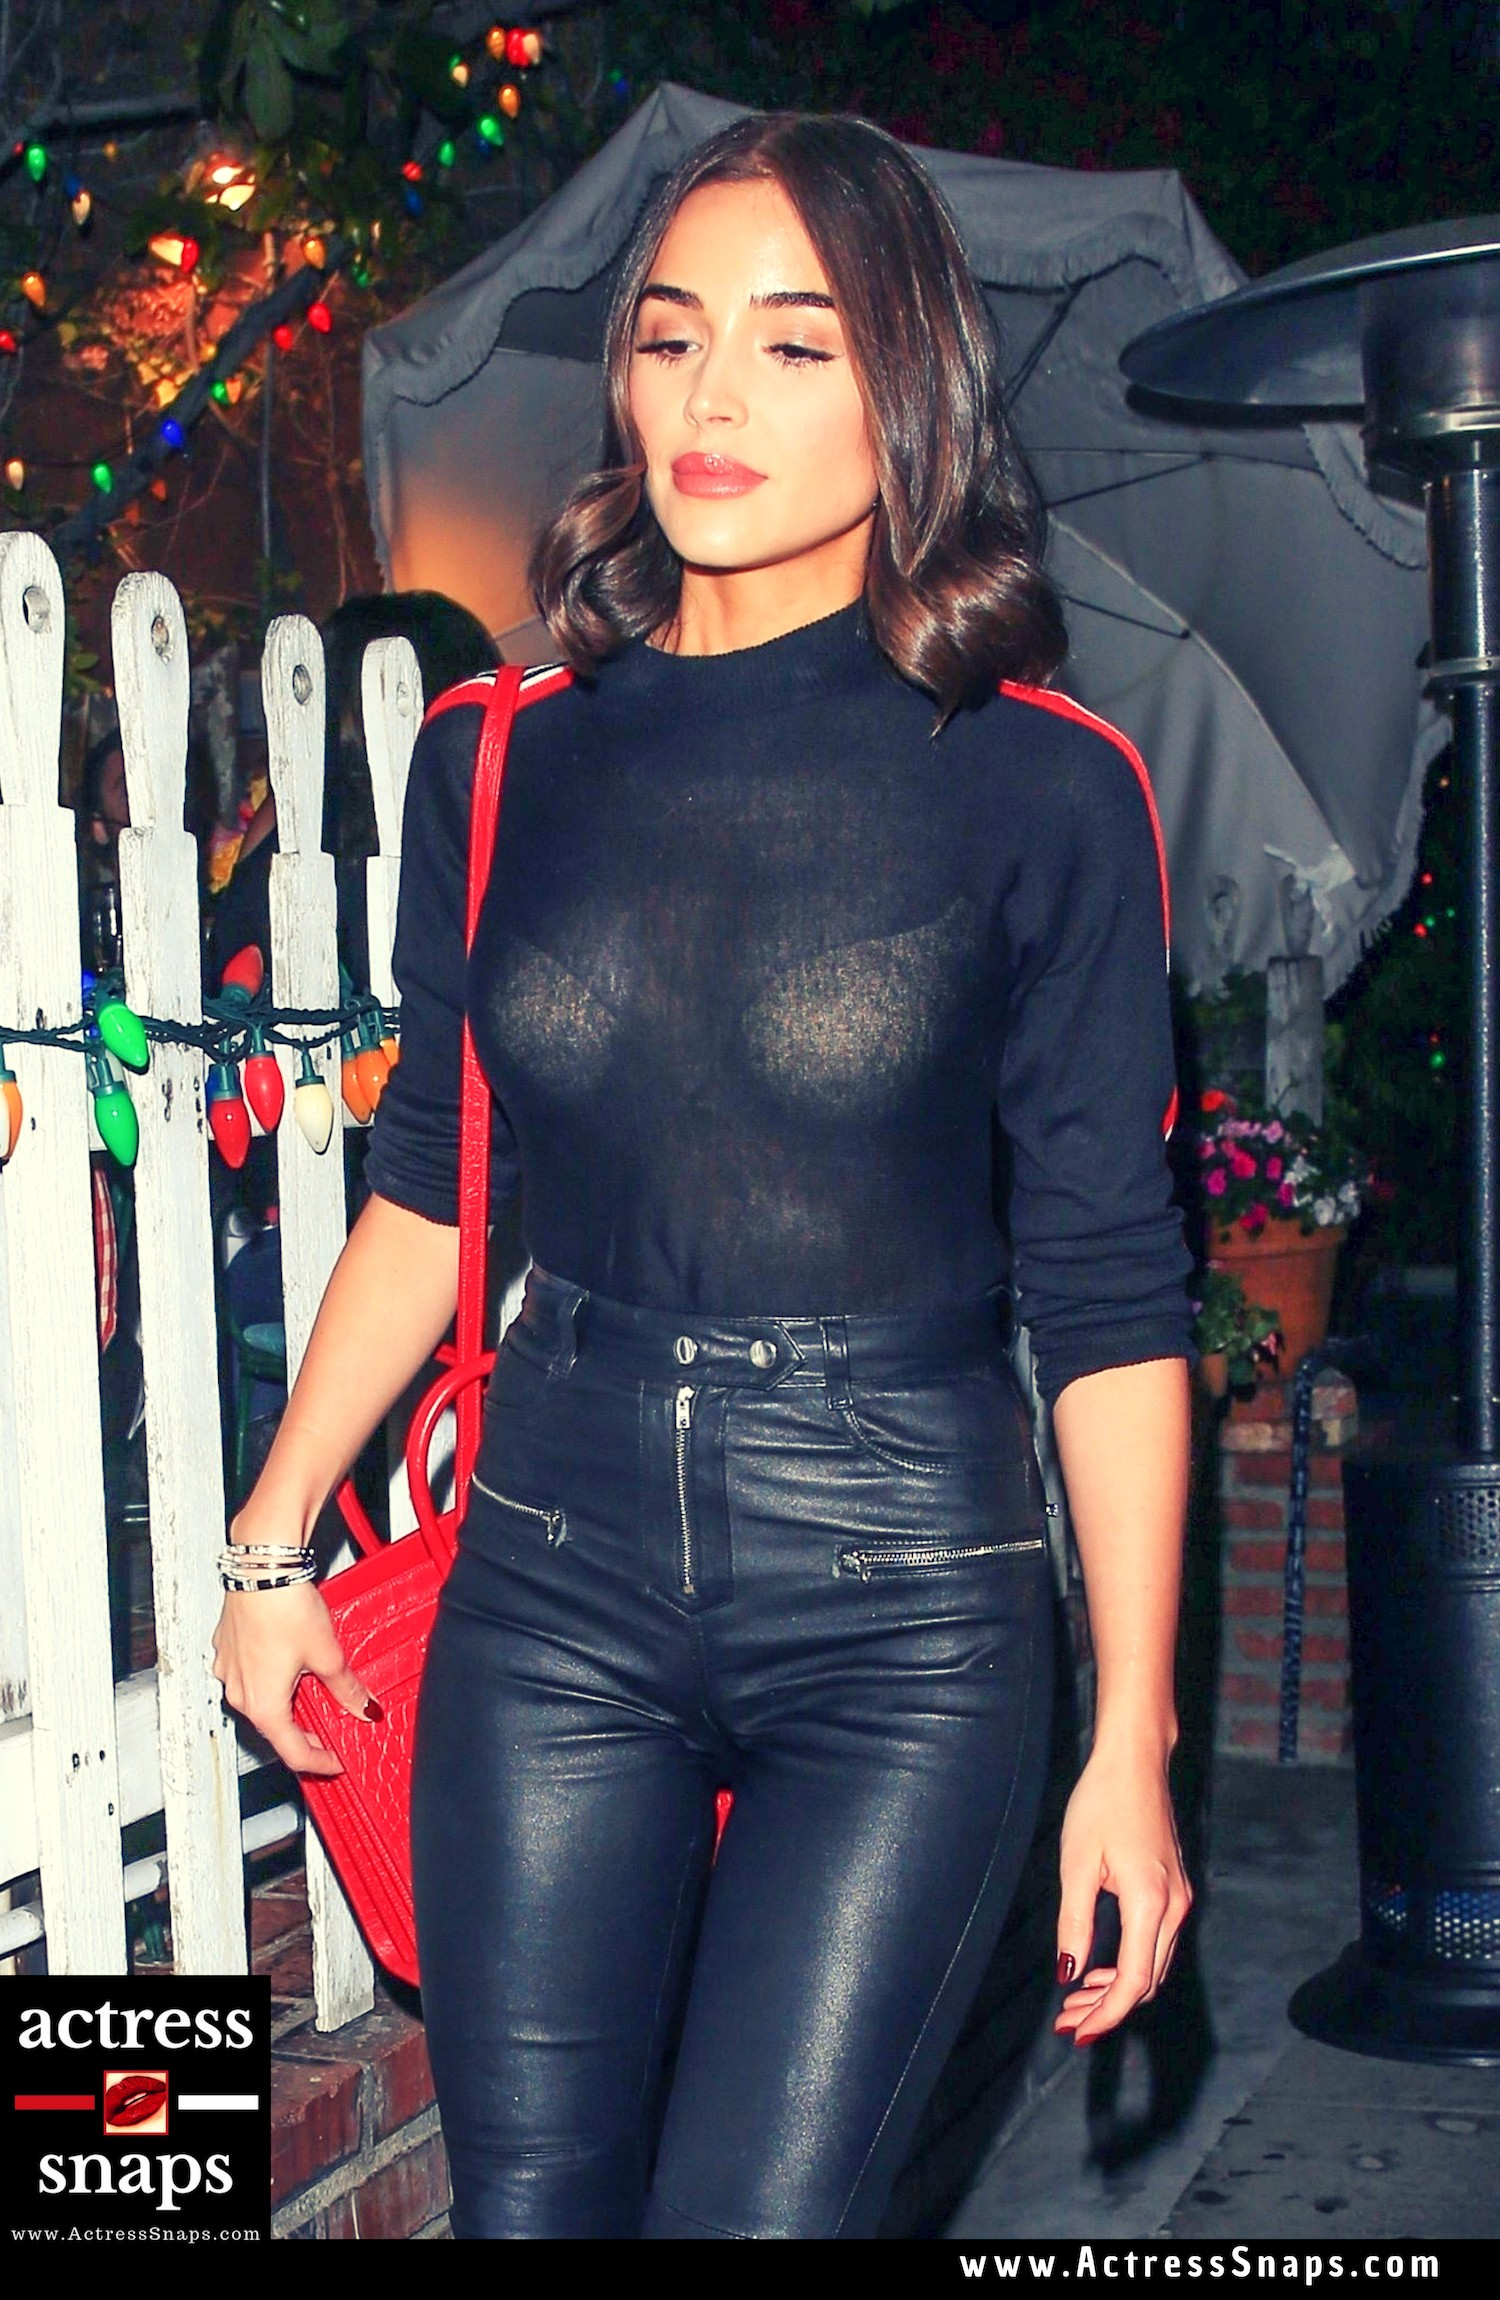 Olivia Culpo Looking hot in Black and Red - Sexy Actress Pictures | Hot Actress Pictures - ActressSnaps.com